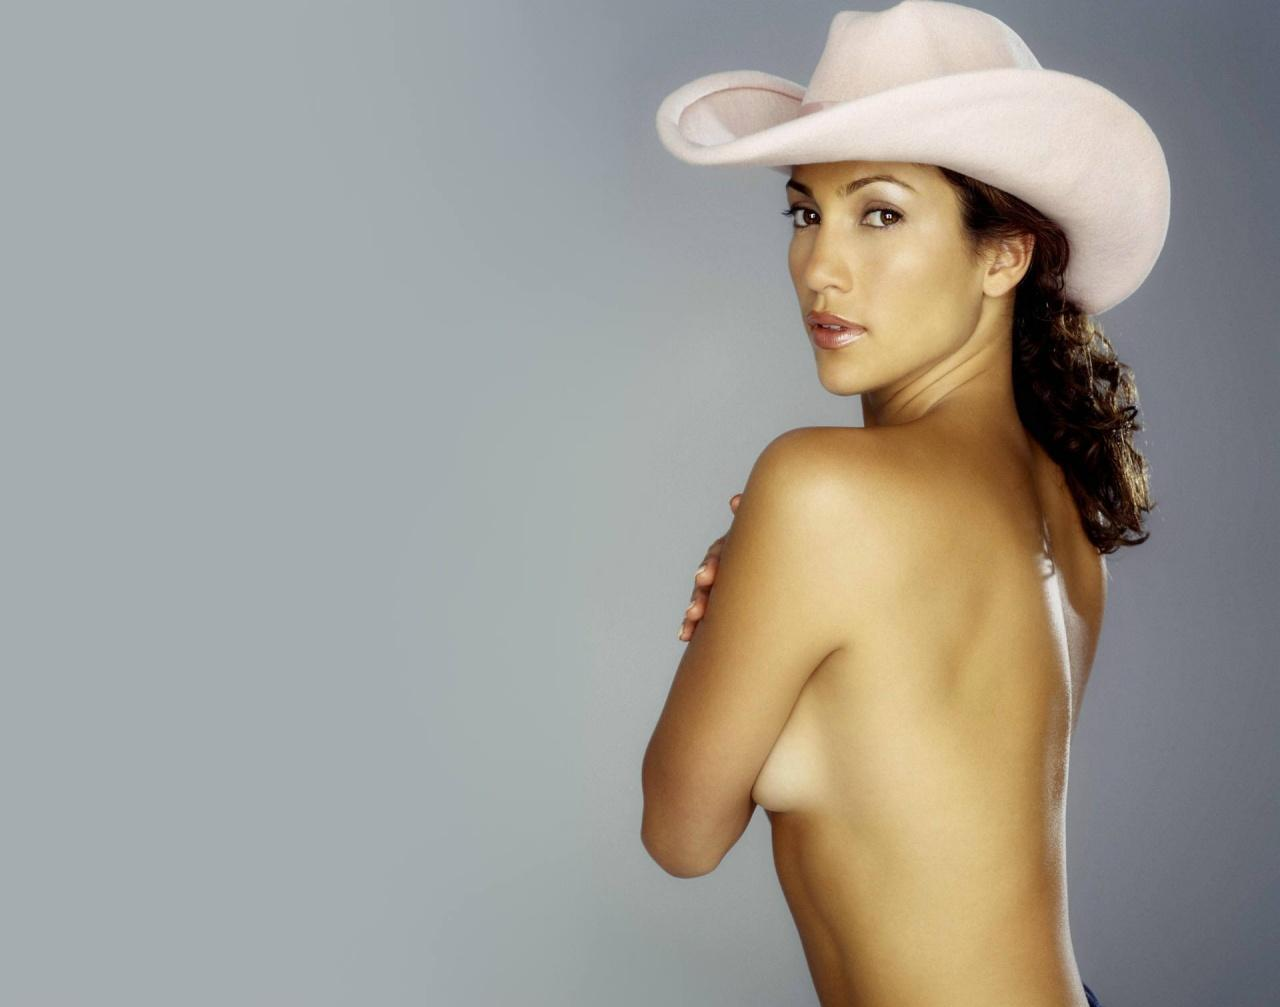 jennifer lopez hot Actress wallpapers 3659